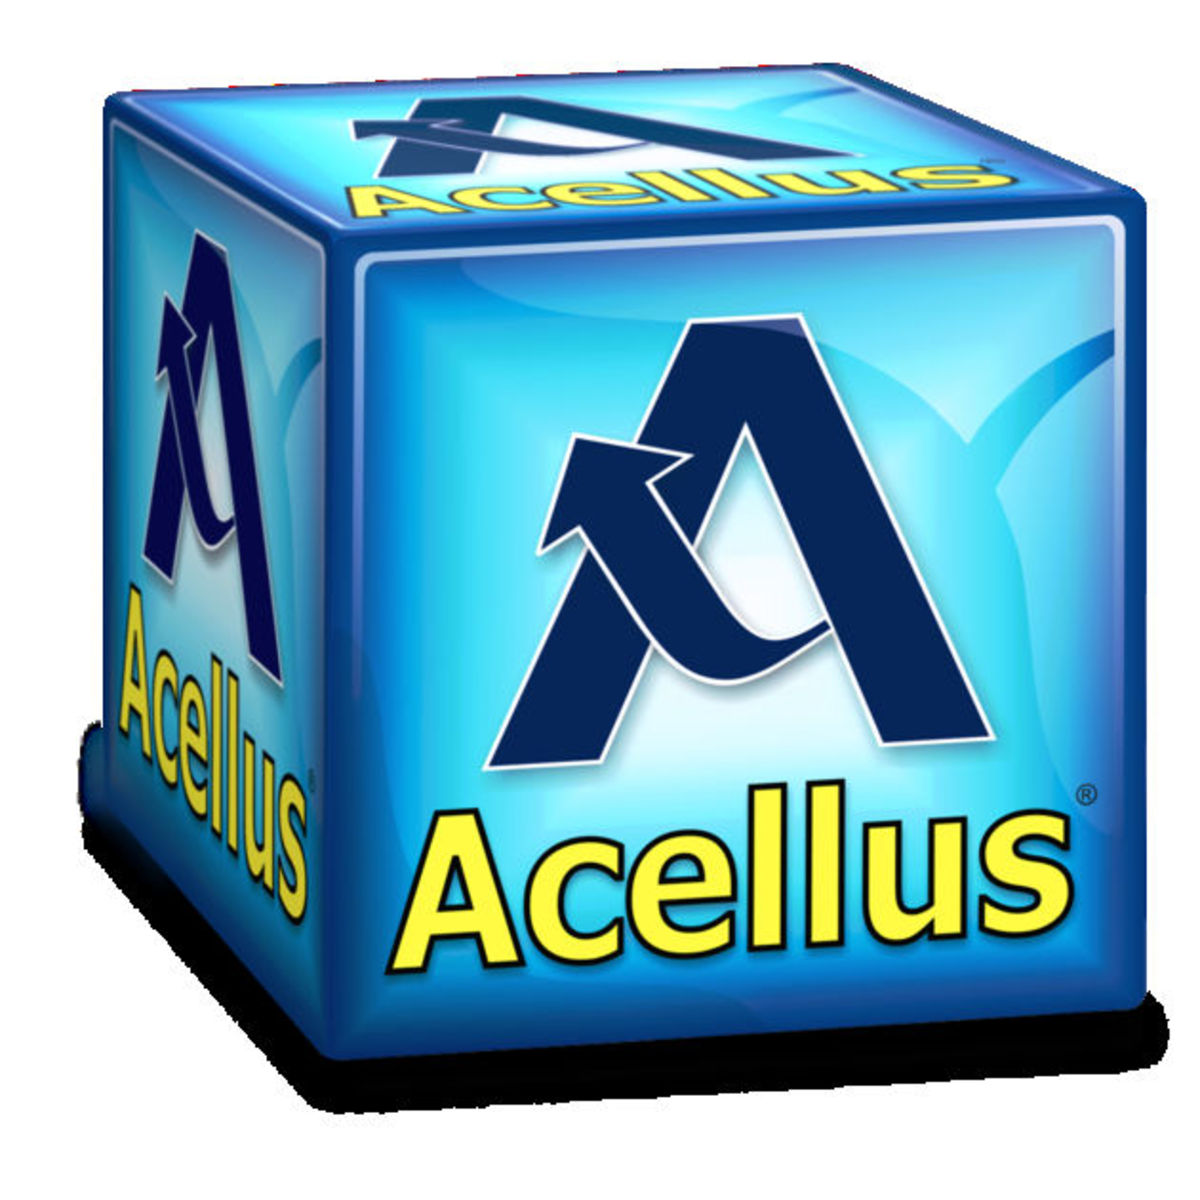 Is Acellus Power Homeschool Accredited?